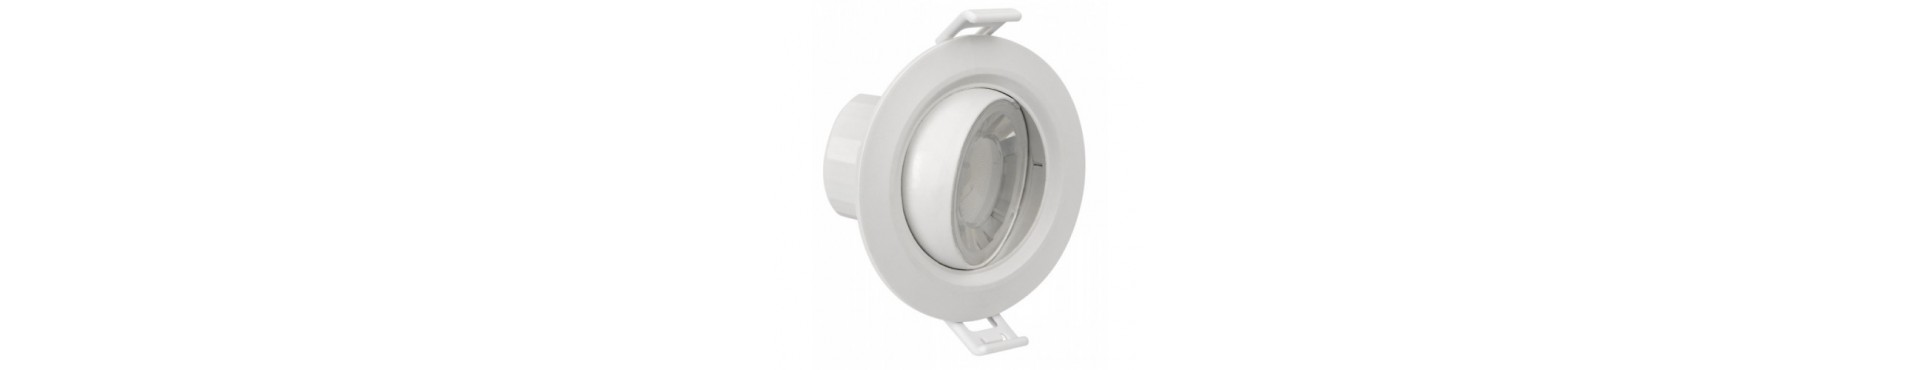 LED downlight - Billige og flotte LED downlights online